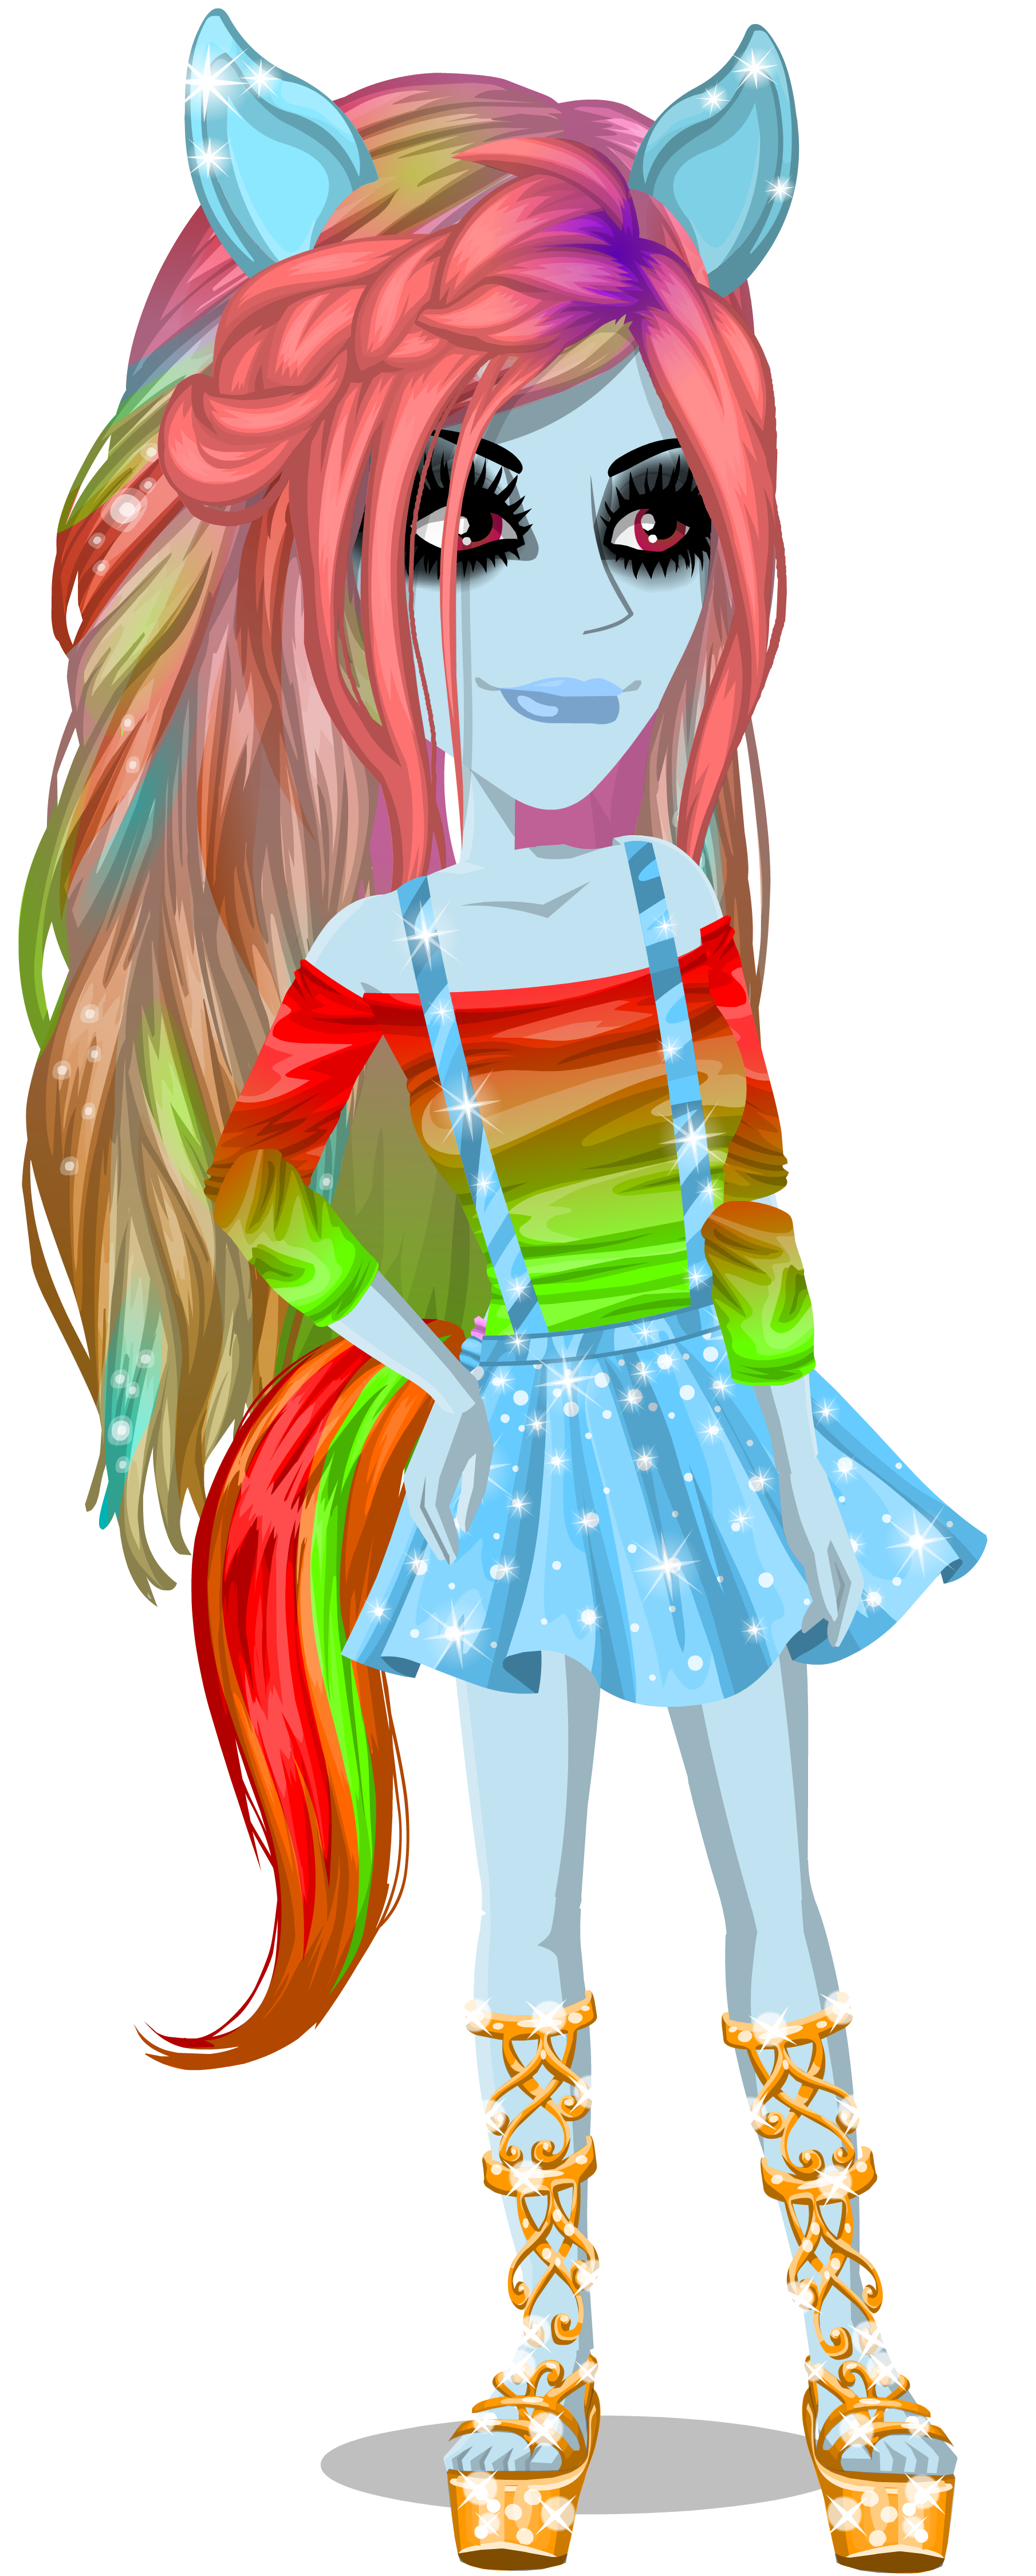 rainbow dash is awesome moviestarplanet wiki fandom powered by wikia. Black Bedroom Furniture Sets. Home Design Ideas